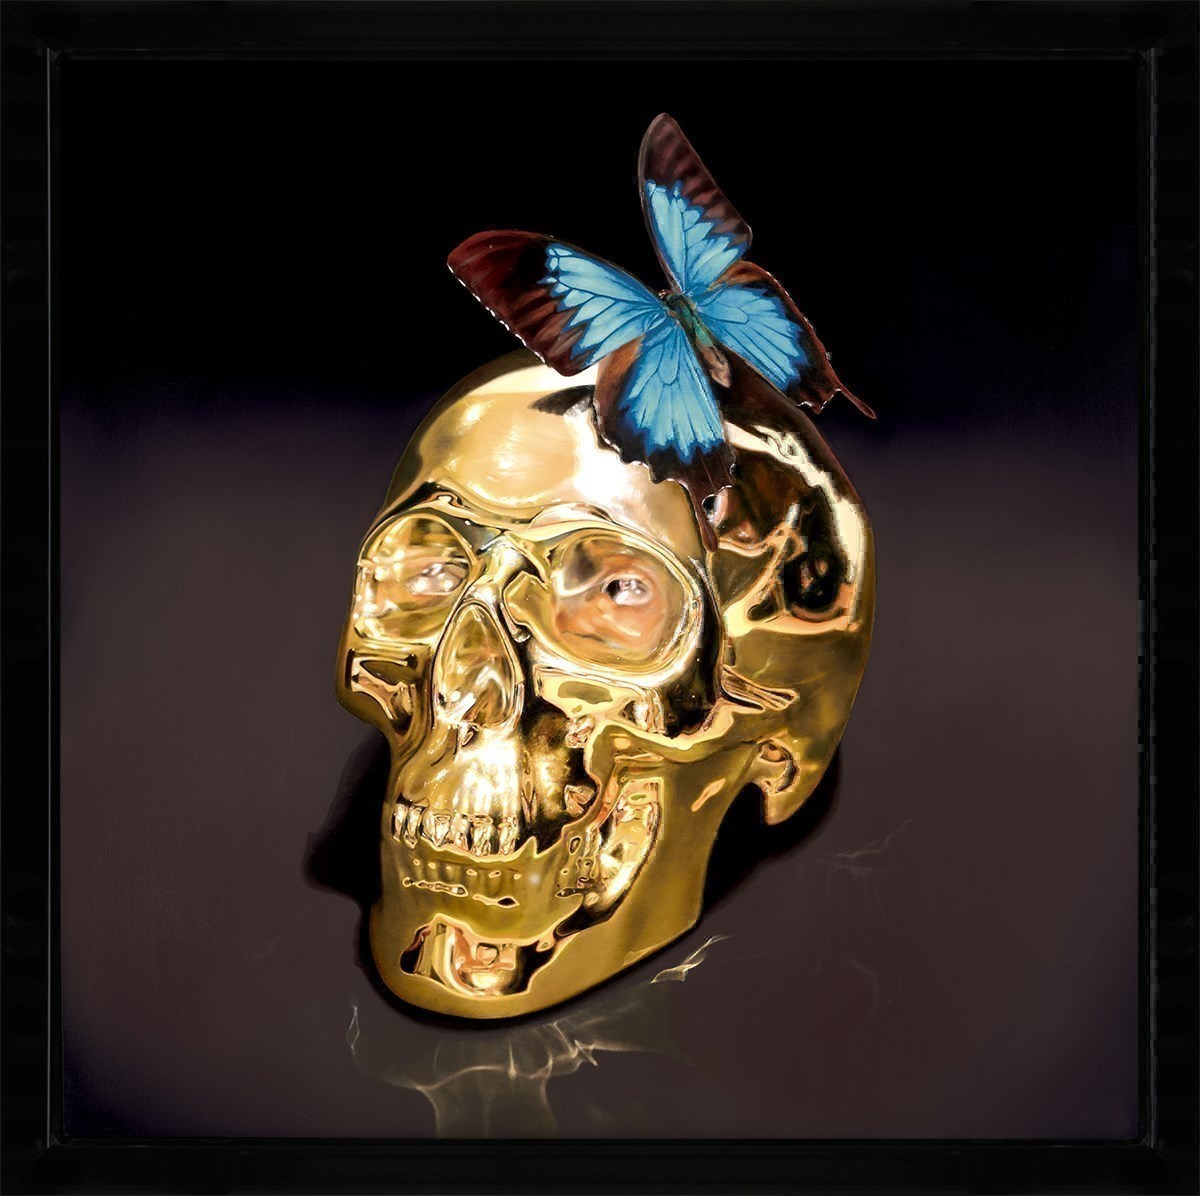 Butterfly Kiss by Rory Hancock - Limited Edition Glazed Box Canvas sized 26x26 inches. Available from Whitewall Galleries